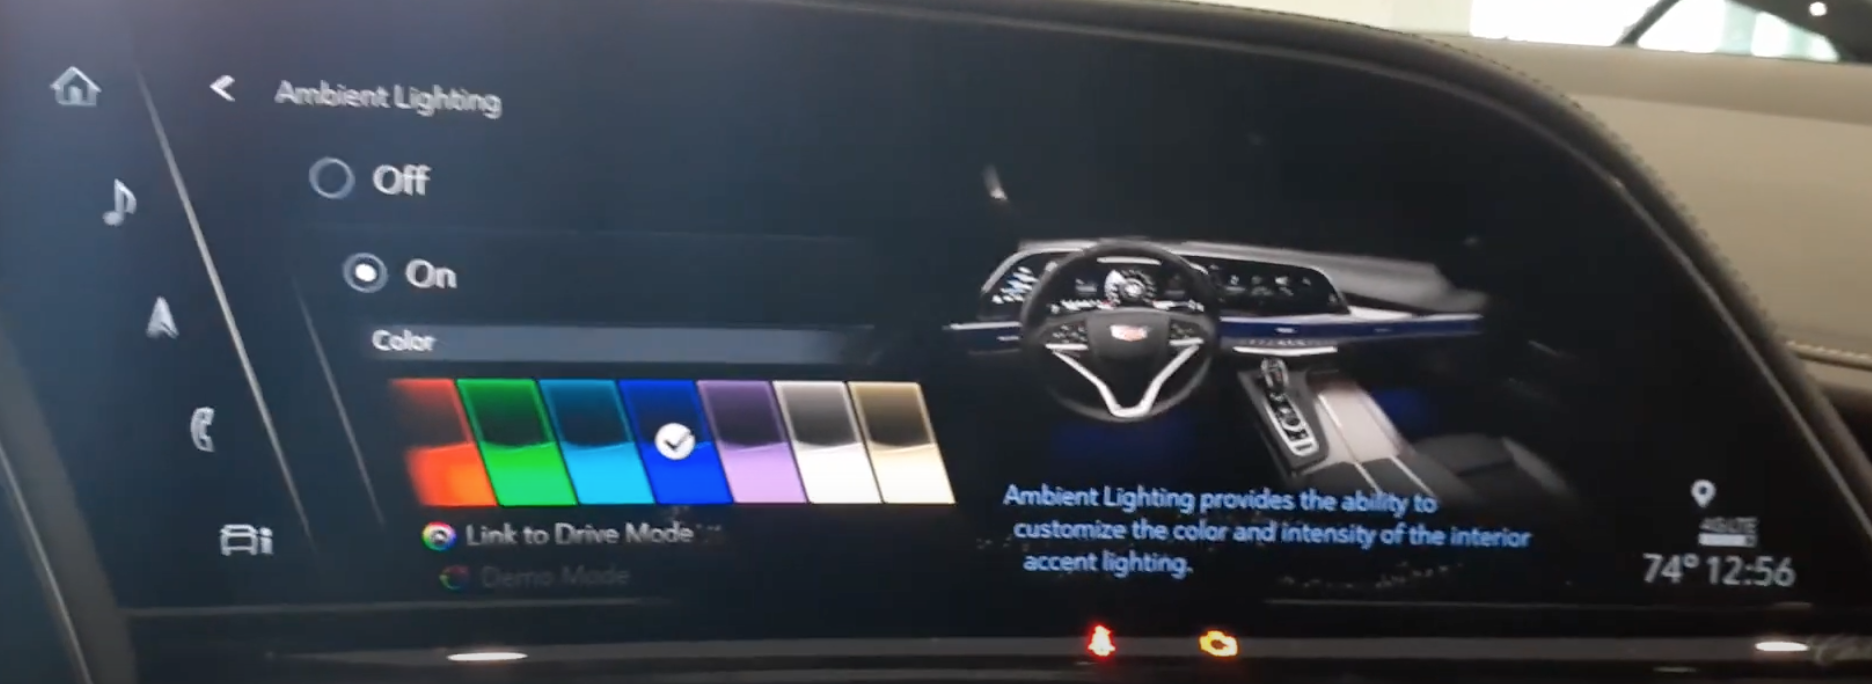 Ambient lighting settings with various colors to chose from and an illustration of the interior of a car to see how the chosen color looks